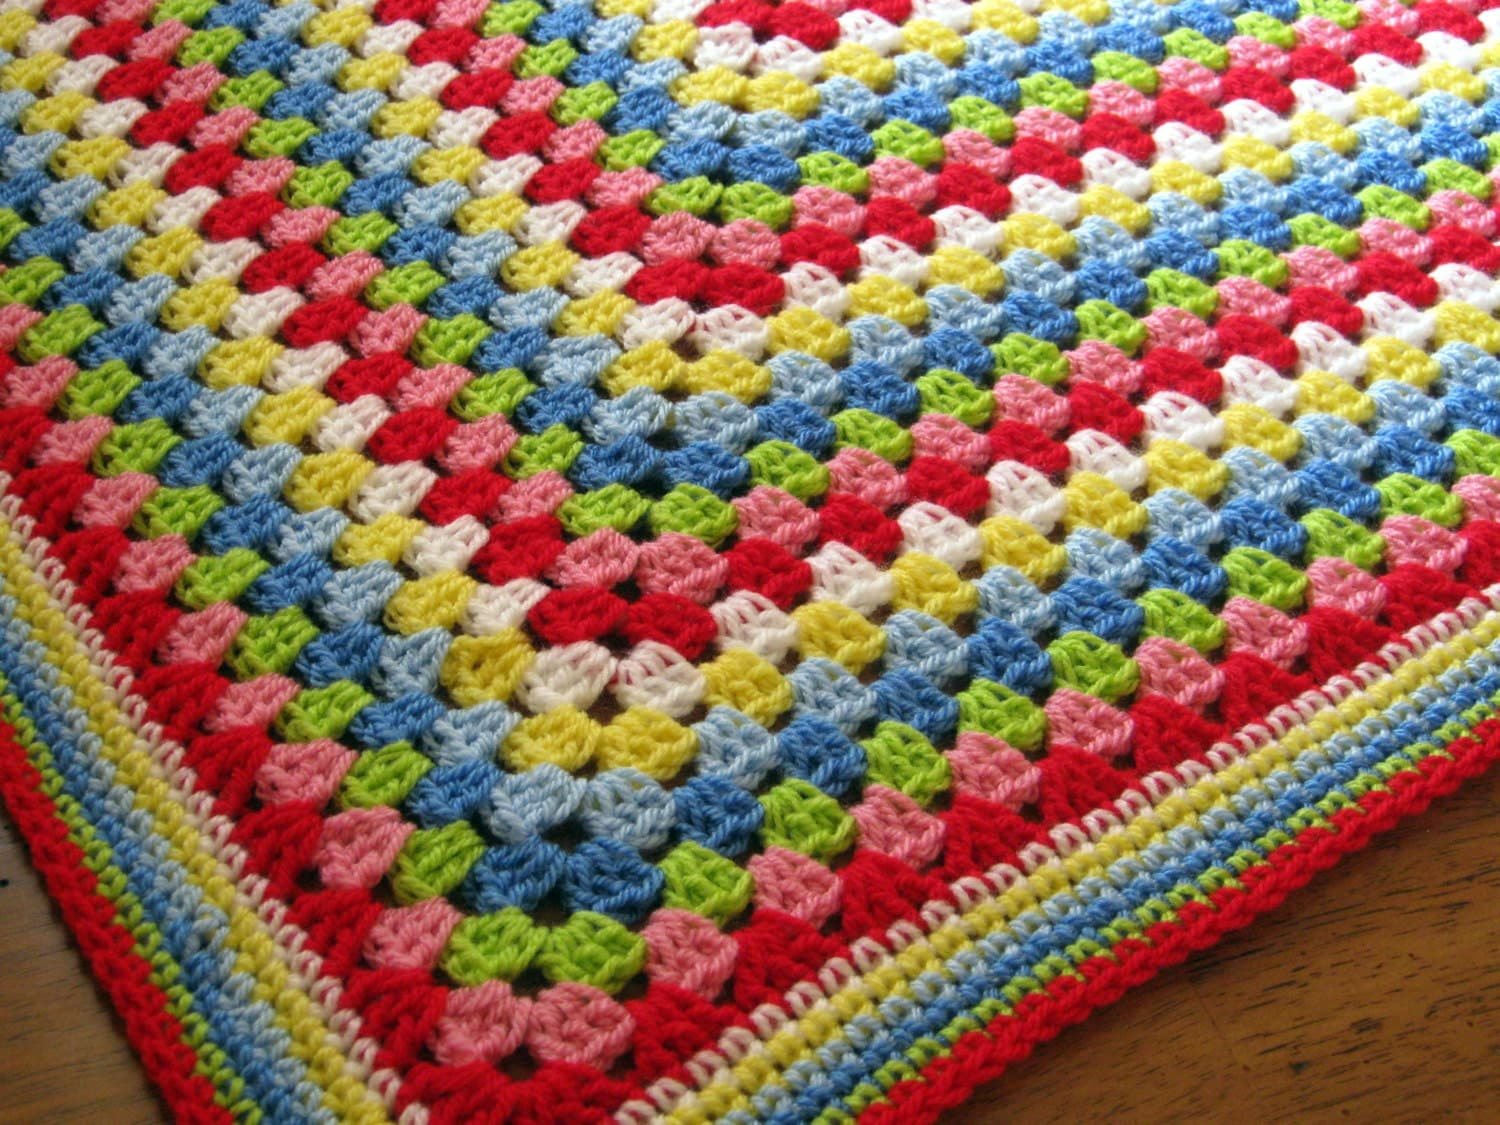 Crochet A Blanket : Granny Square Crochet Blanket Cath Kidston Colours by Thesunroomuk